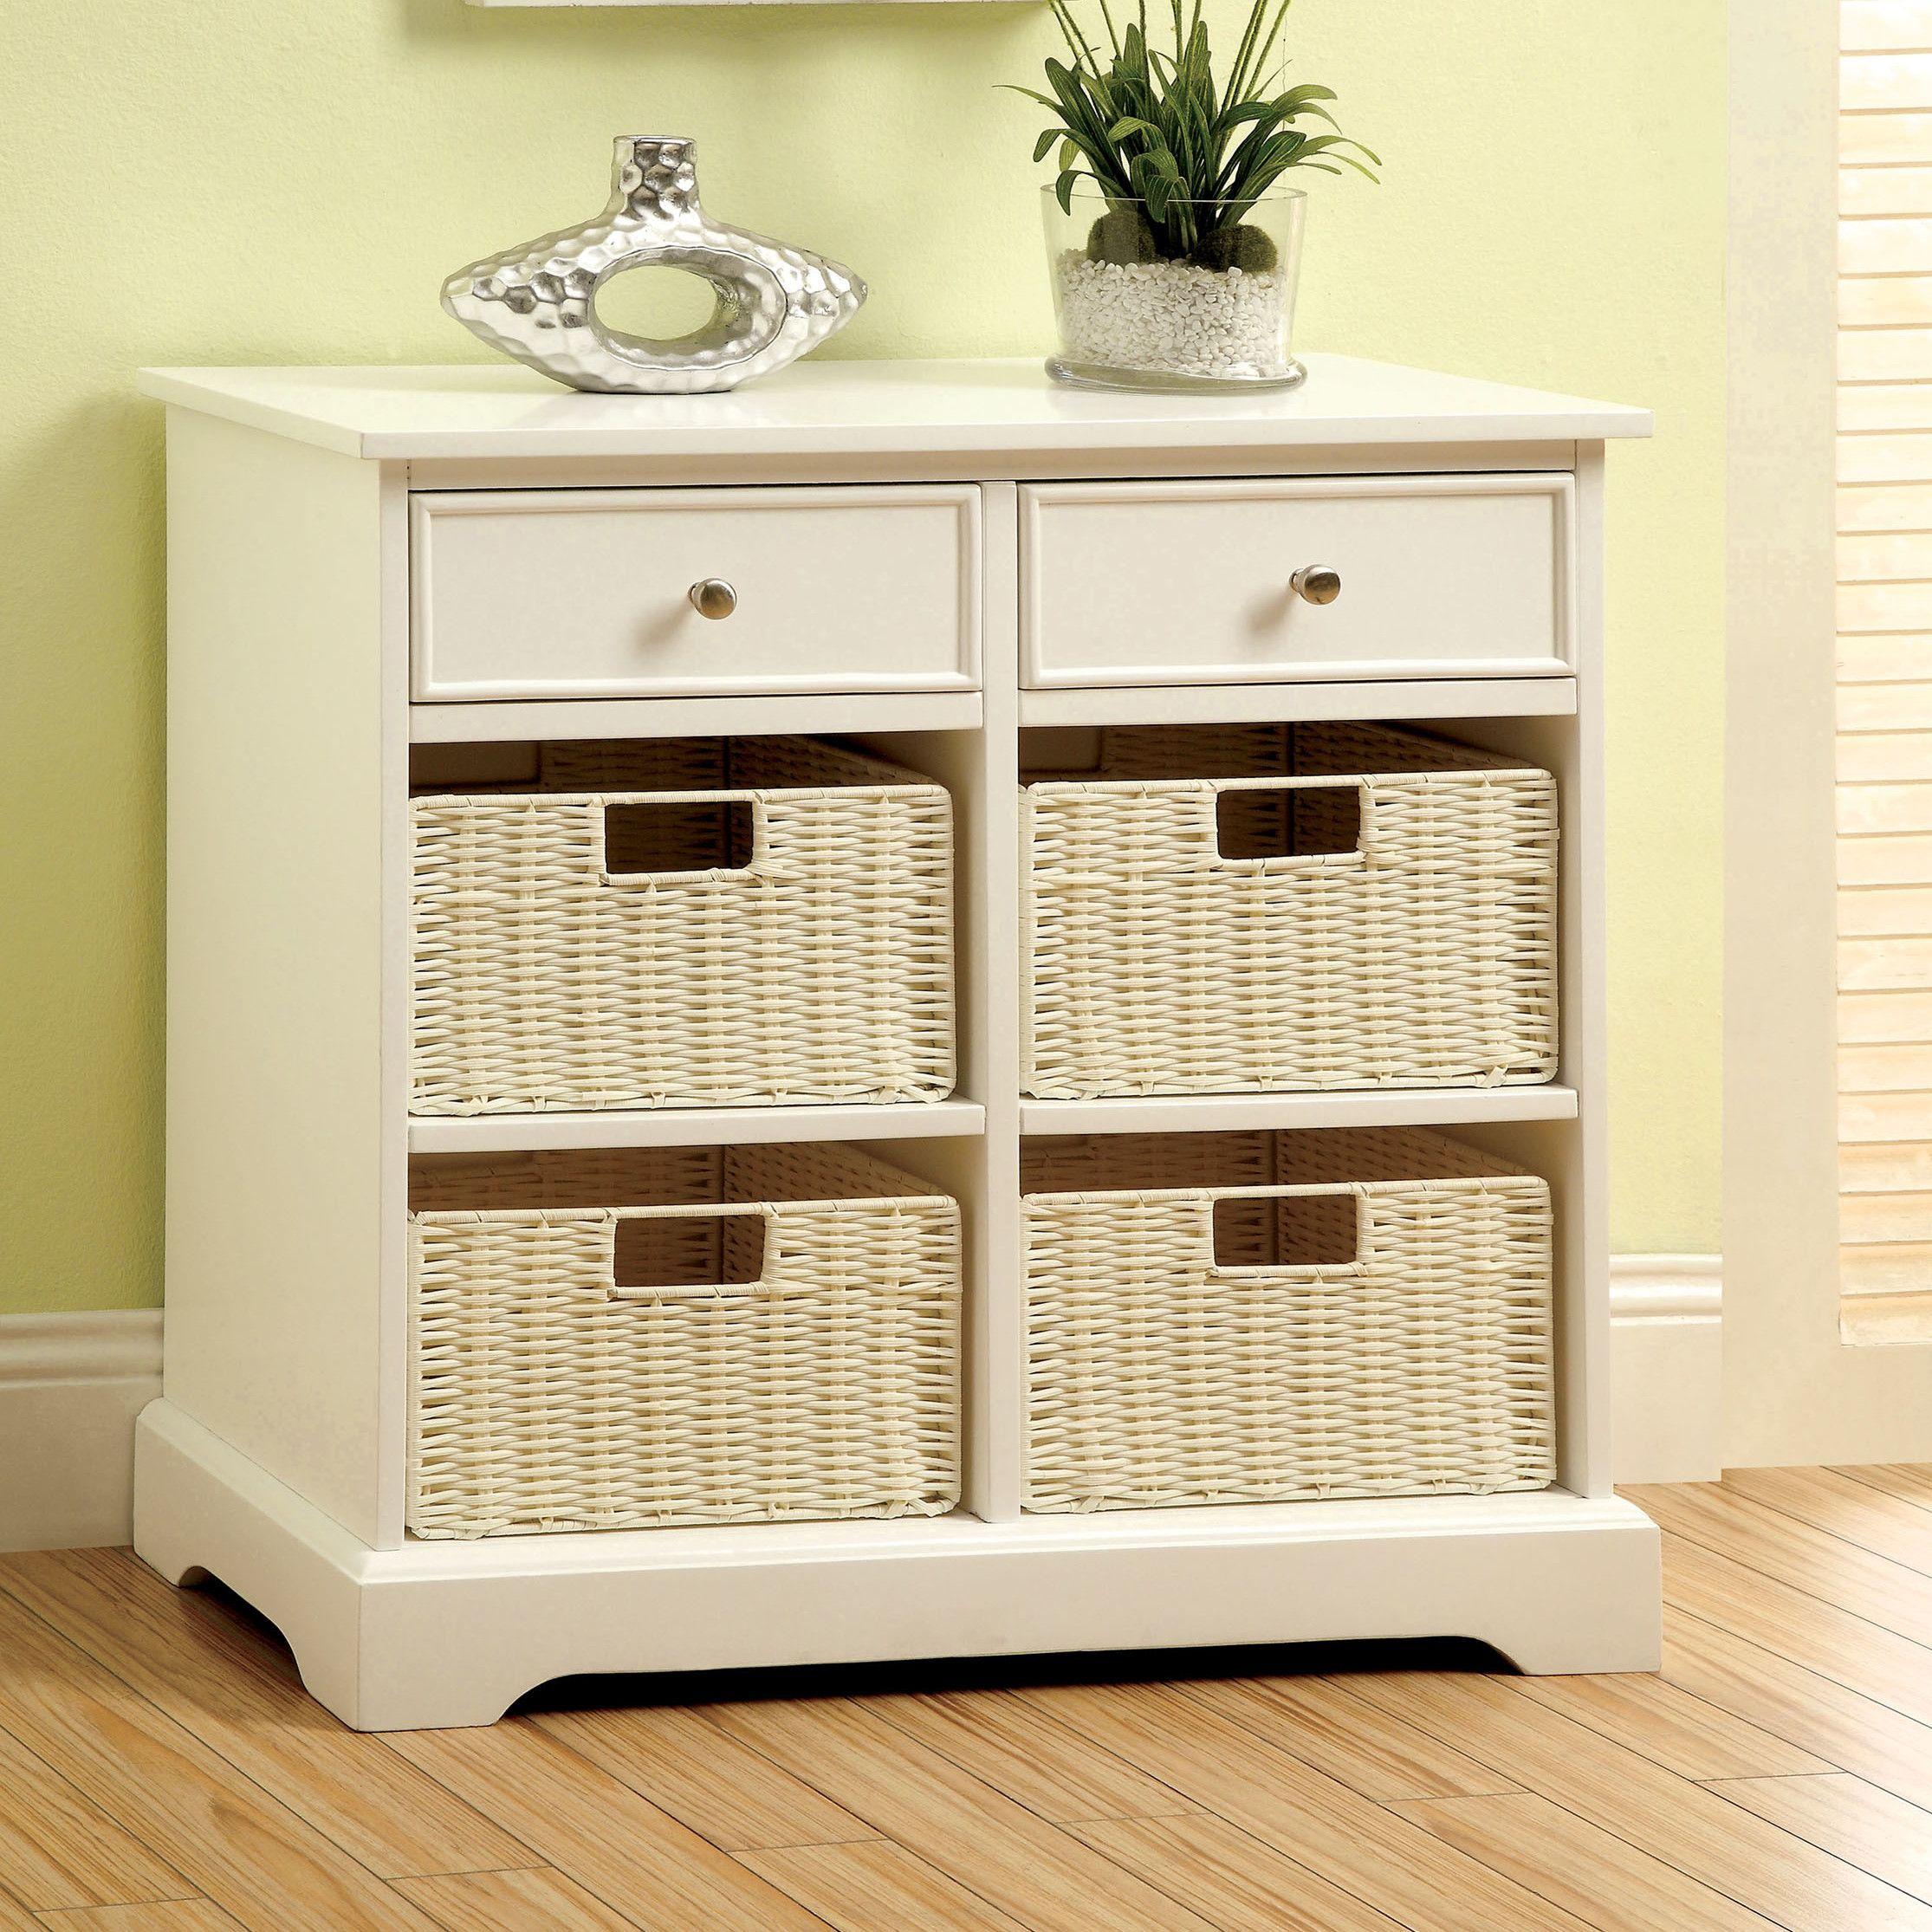 Practical Double Row With Baskets Drawer Storage Cabinet